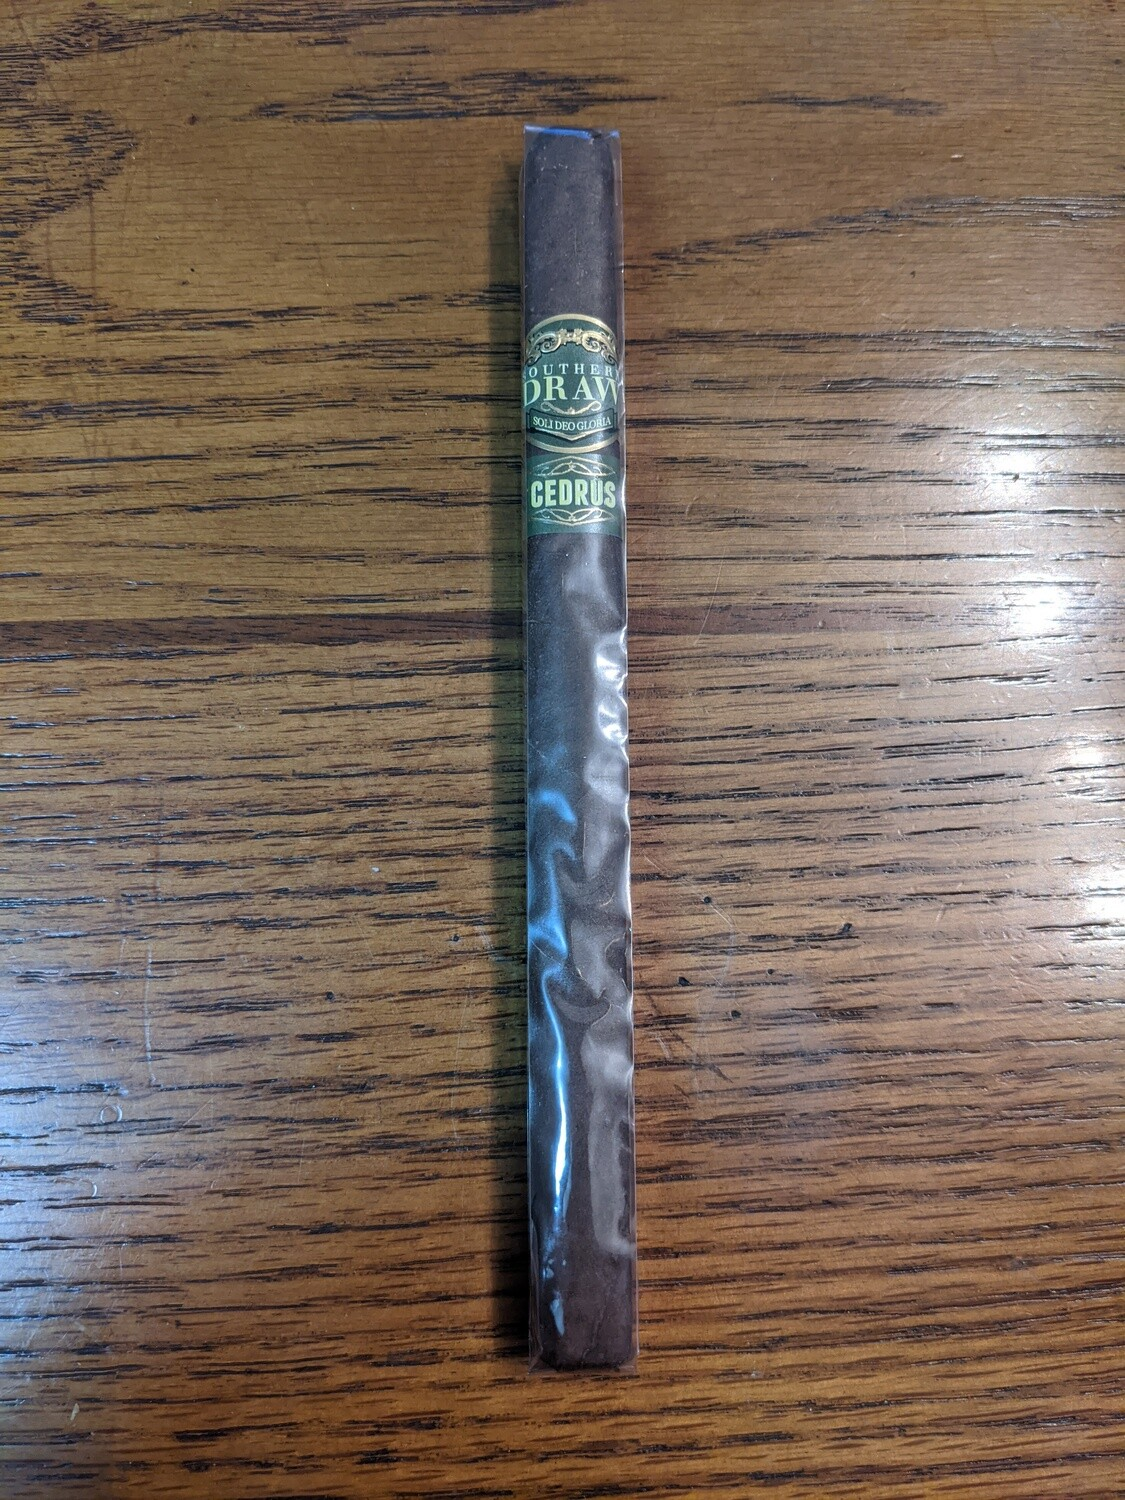 Southern Draw Cedrus Lancero 7.5 x 40 Single Cigar